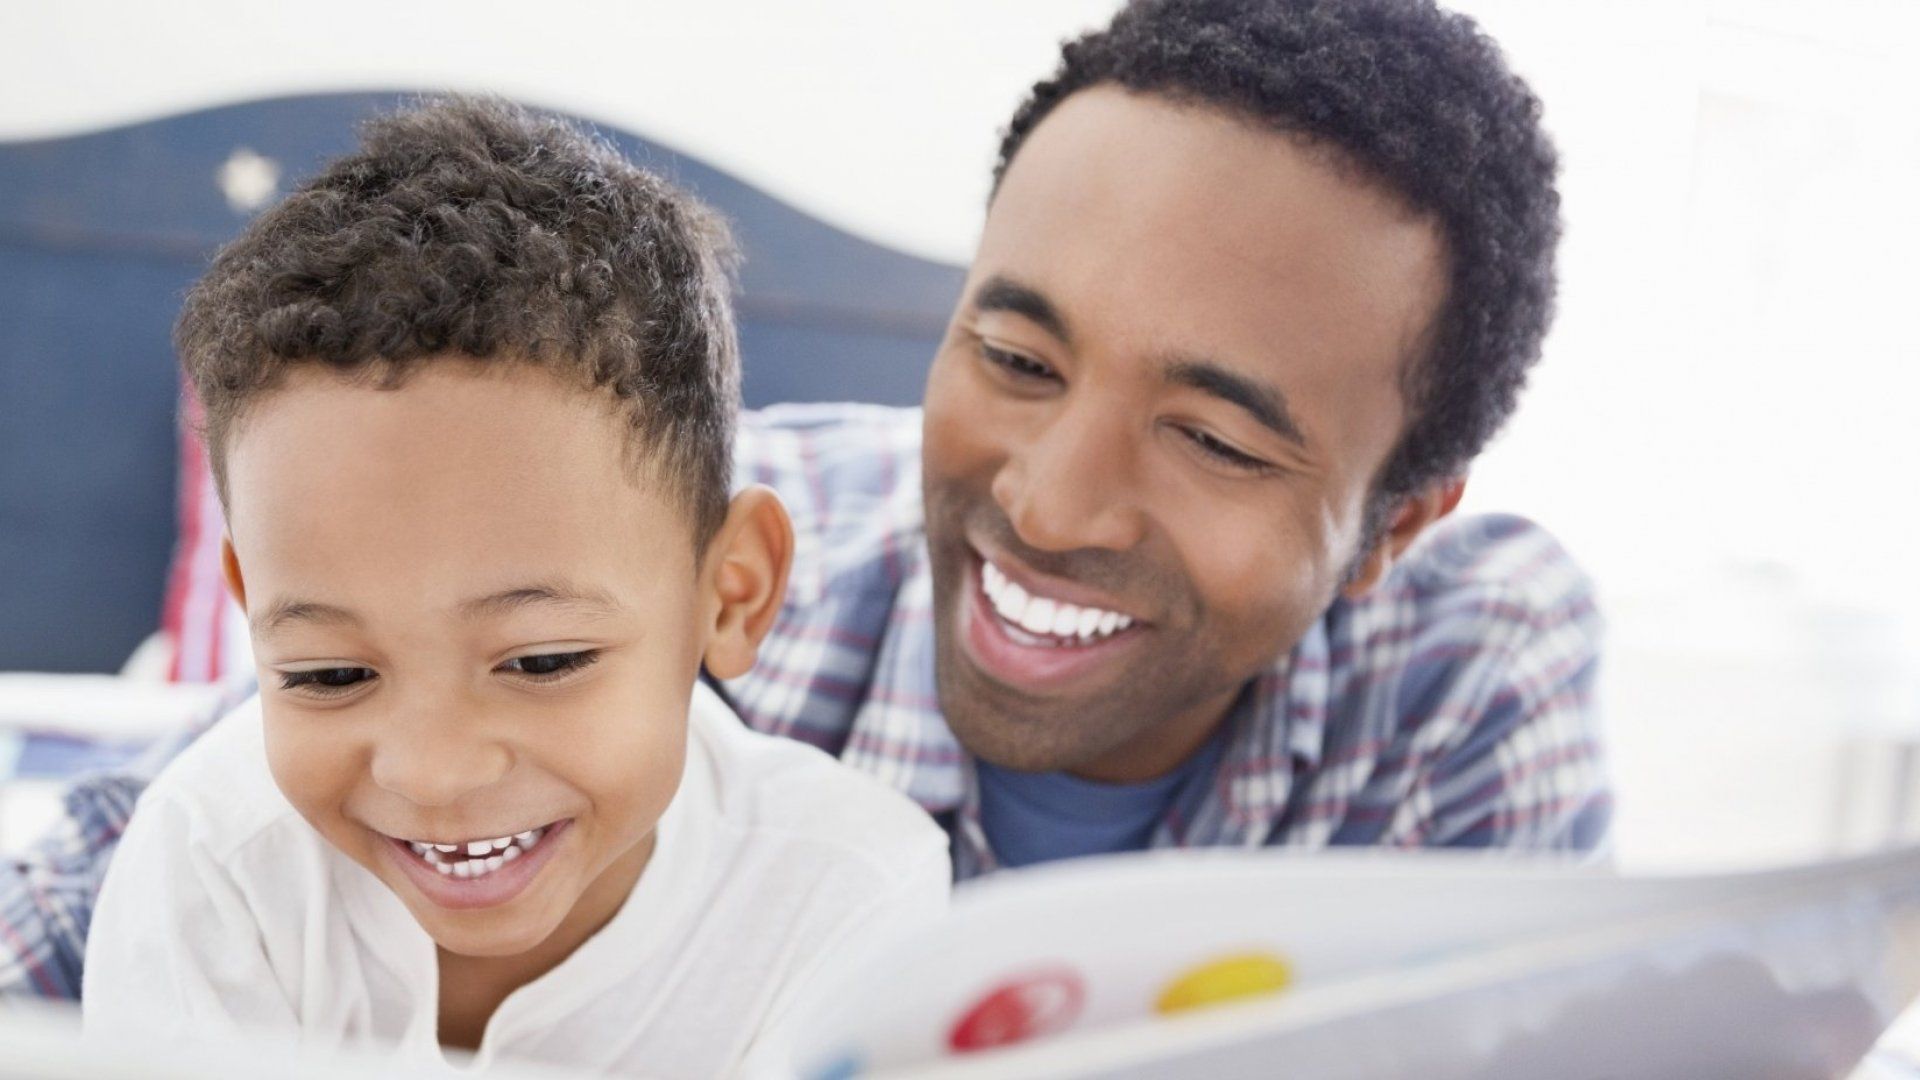 Exceptional Parents Never Say These 10 Things (but Always Do This Instead)